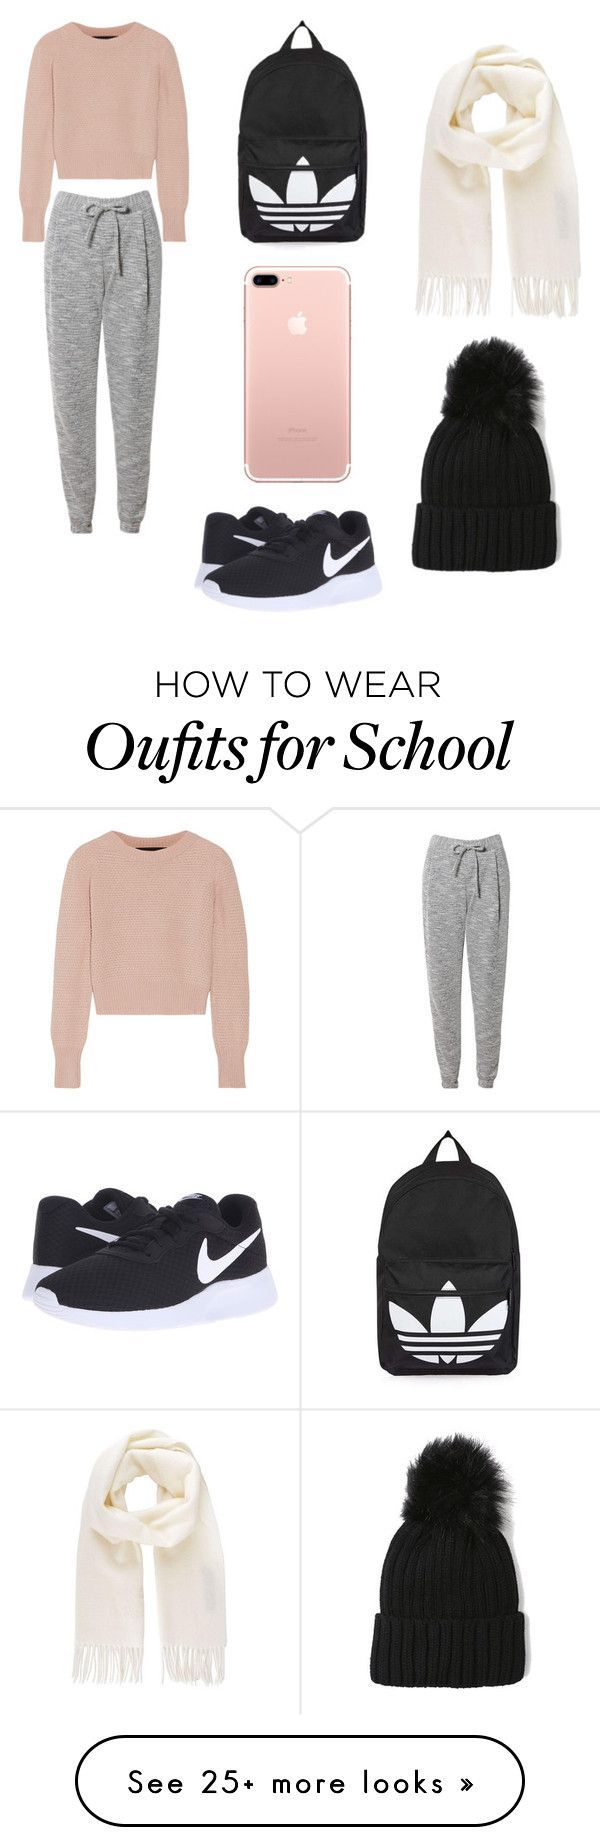 """Lazy Day at School"" by xxgirlstylesxx on Polyvore featuring The Elder Statesman, Related, NIKE, Topshop and Vivienne Westwood"